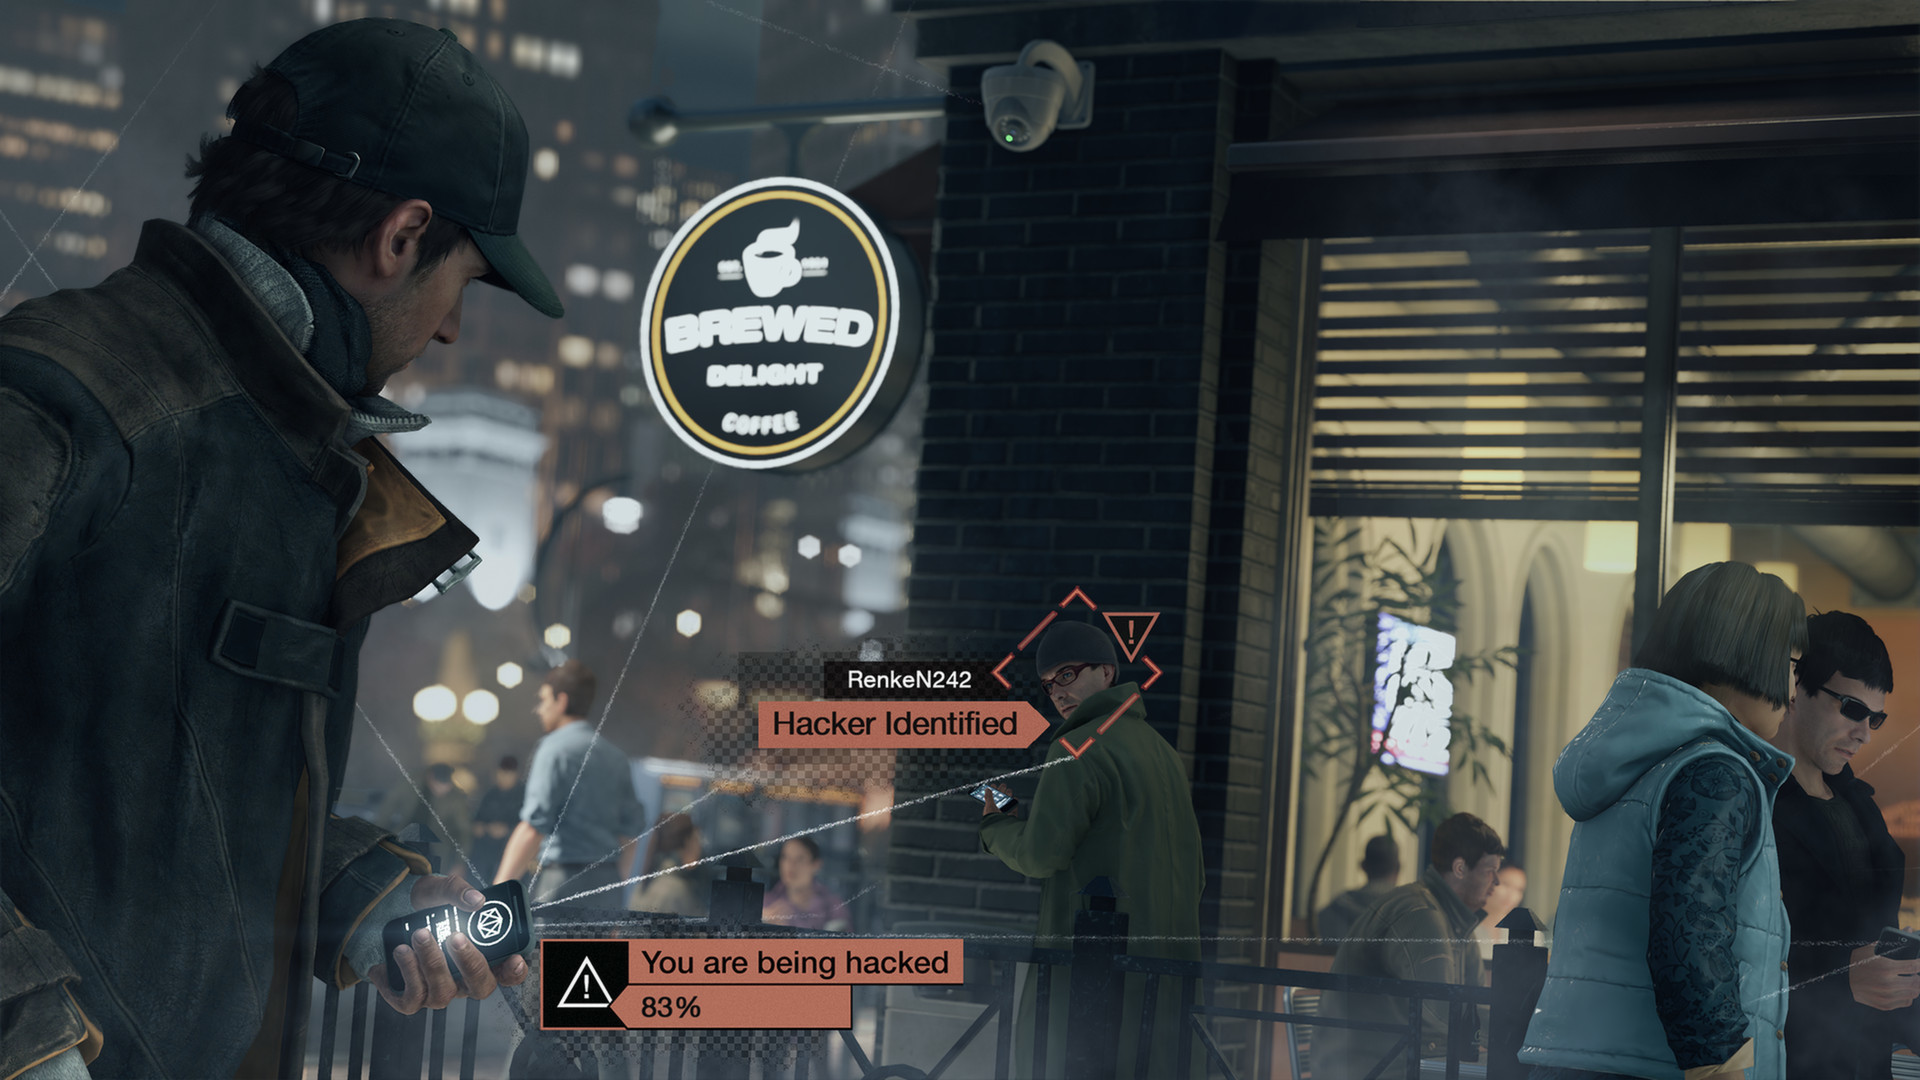 Download Watch Dogs Free from Uplay for a Limited Time